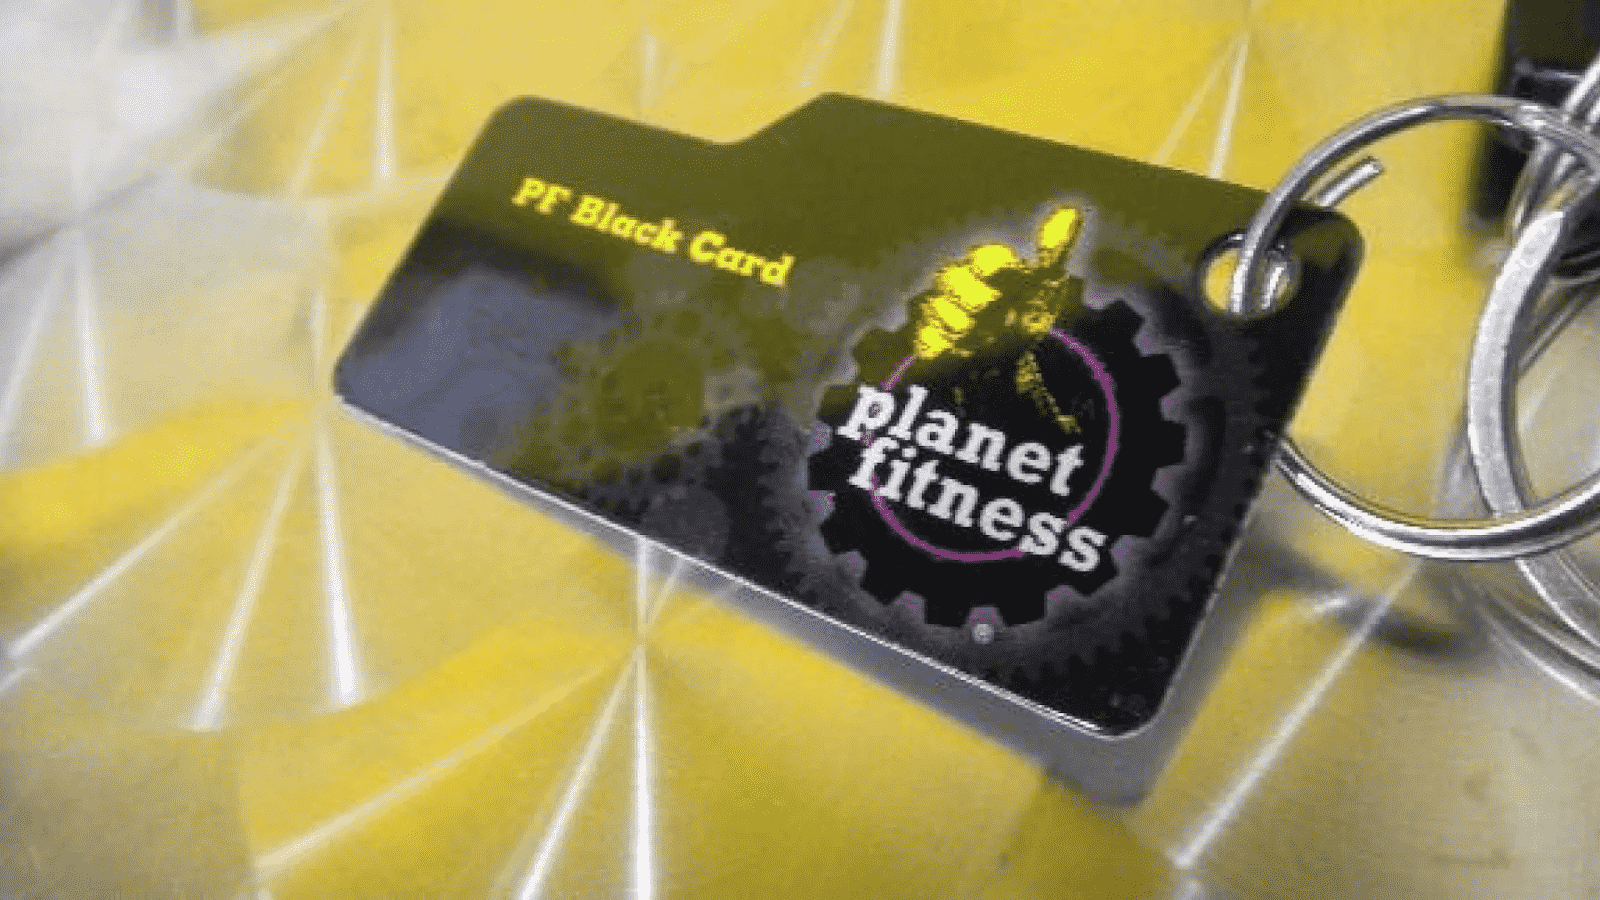 What is the Planet Fitness Black Card